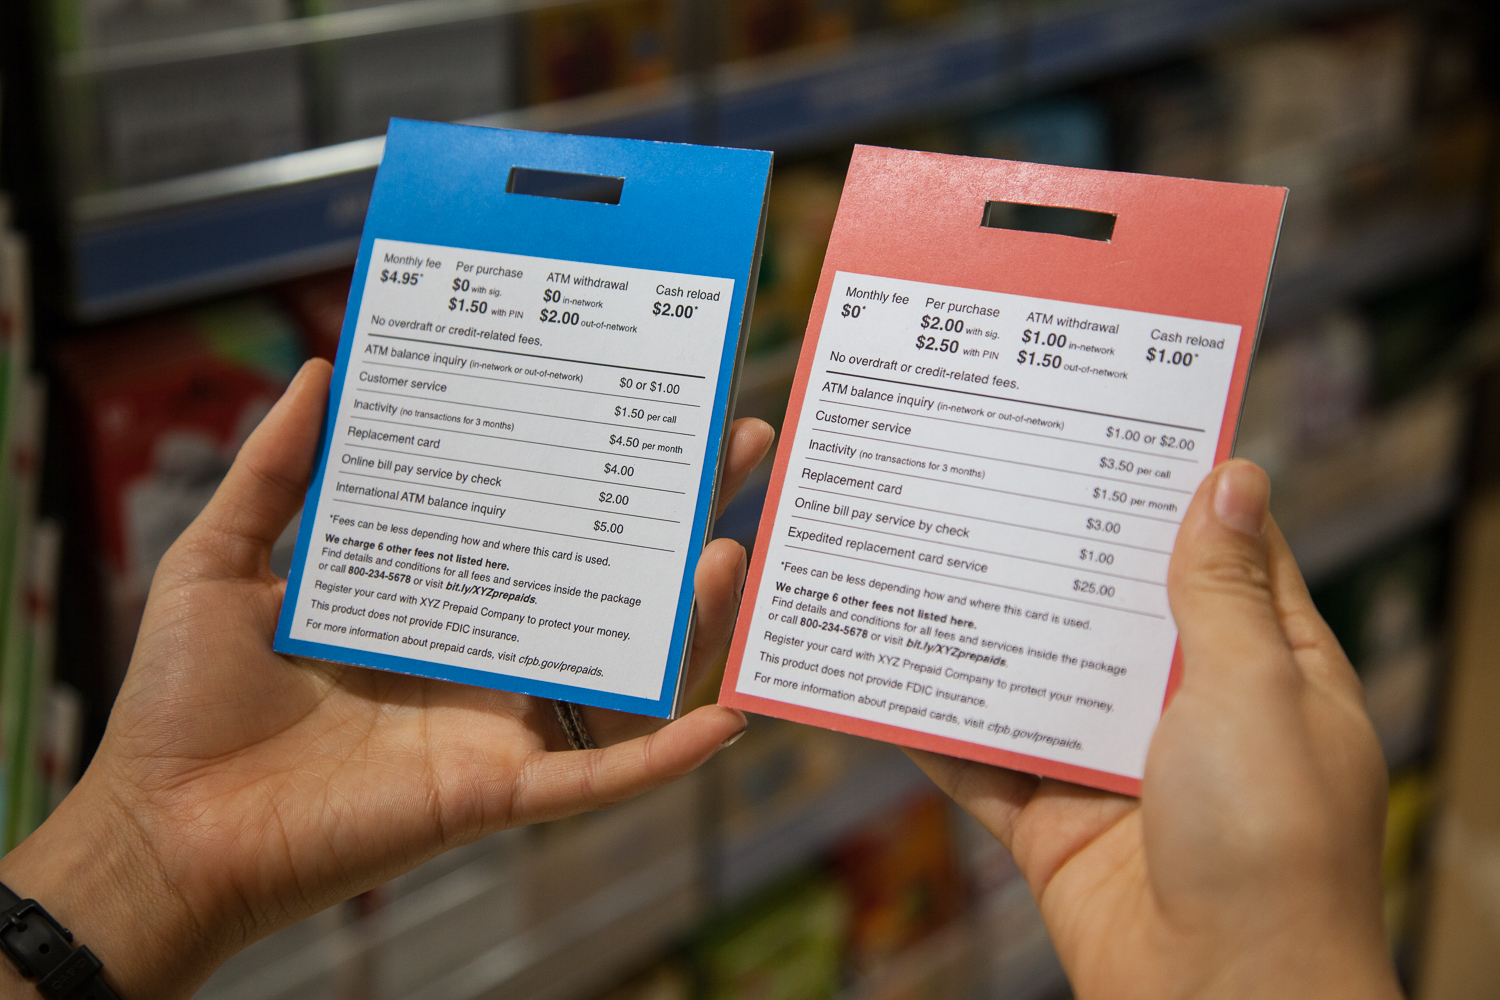 Our proposed short-form disclosure with information for two different sample cards, compared side by side on packaging like a prepaid card might be sold in.